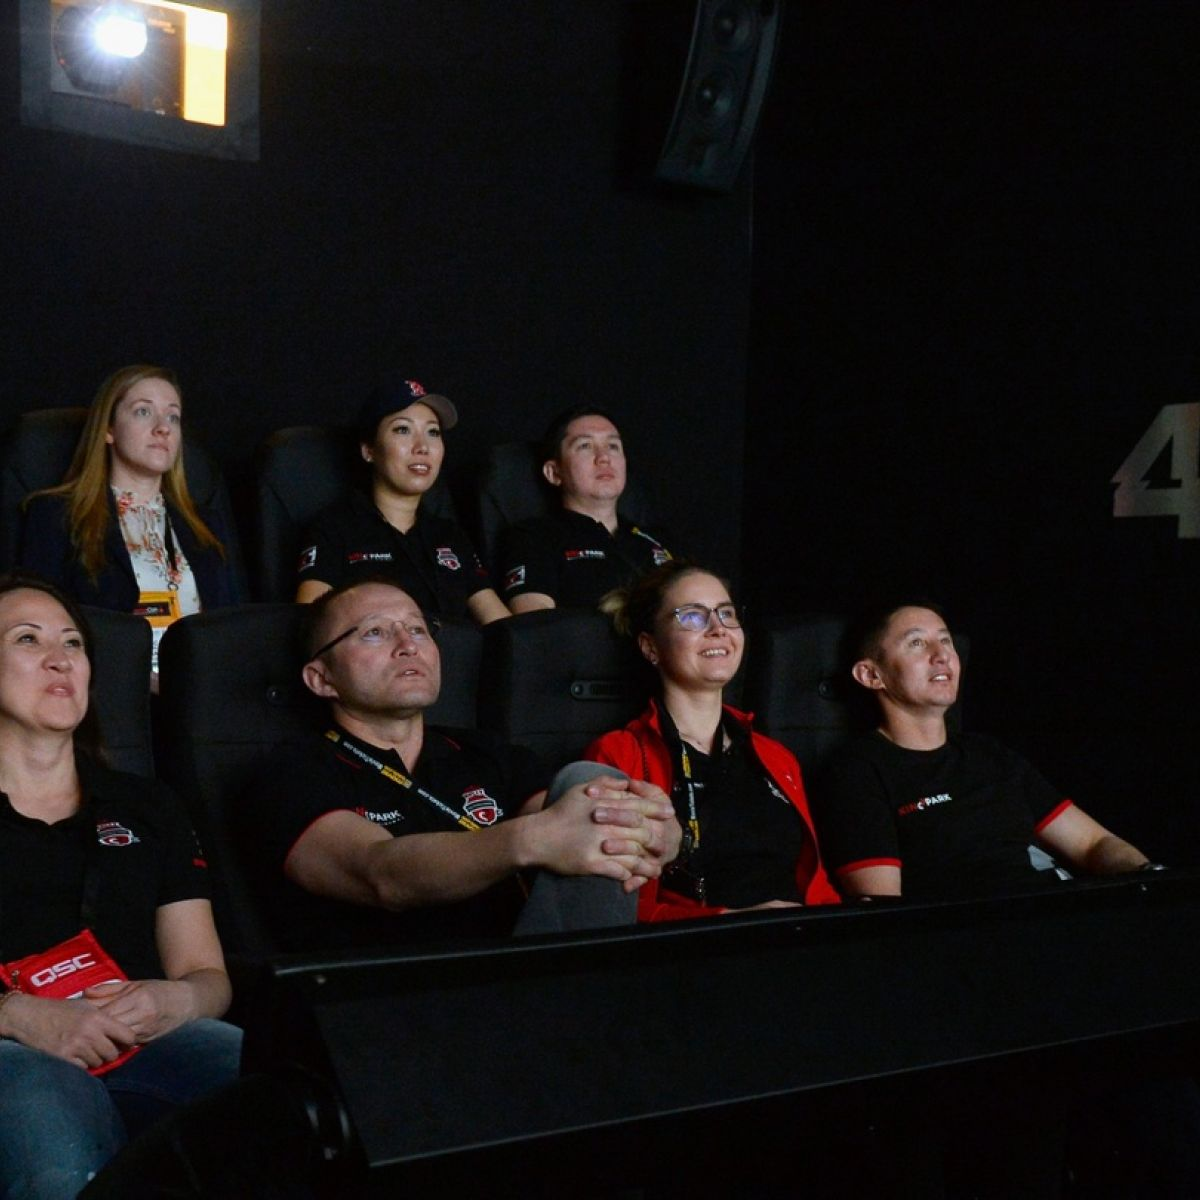 4DX Cinema: A supposedly fun thing I'll never do again